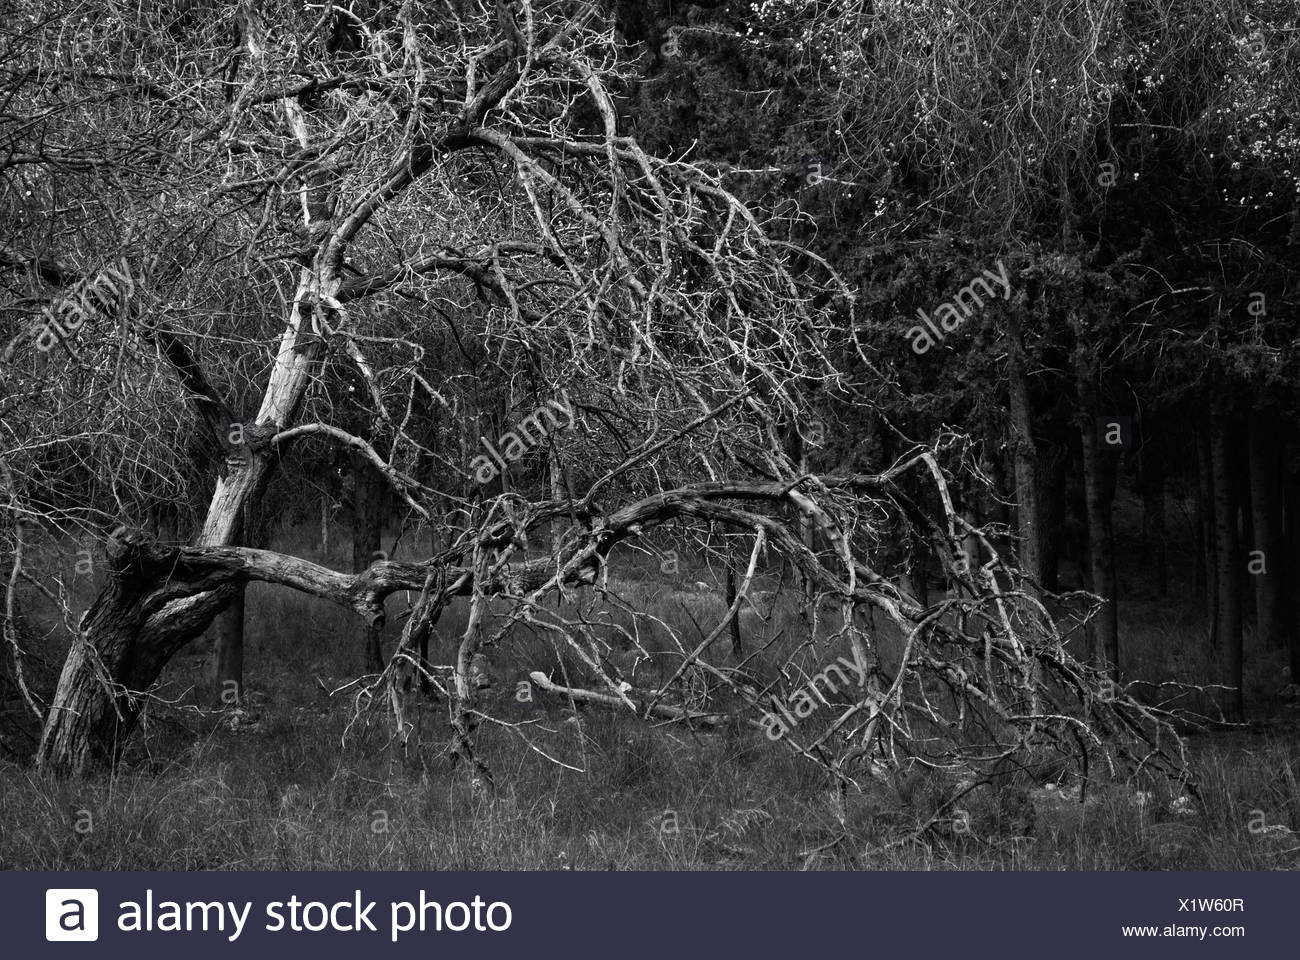 Israel Pine Trees in a forest black and white - Stock Image